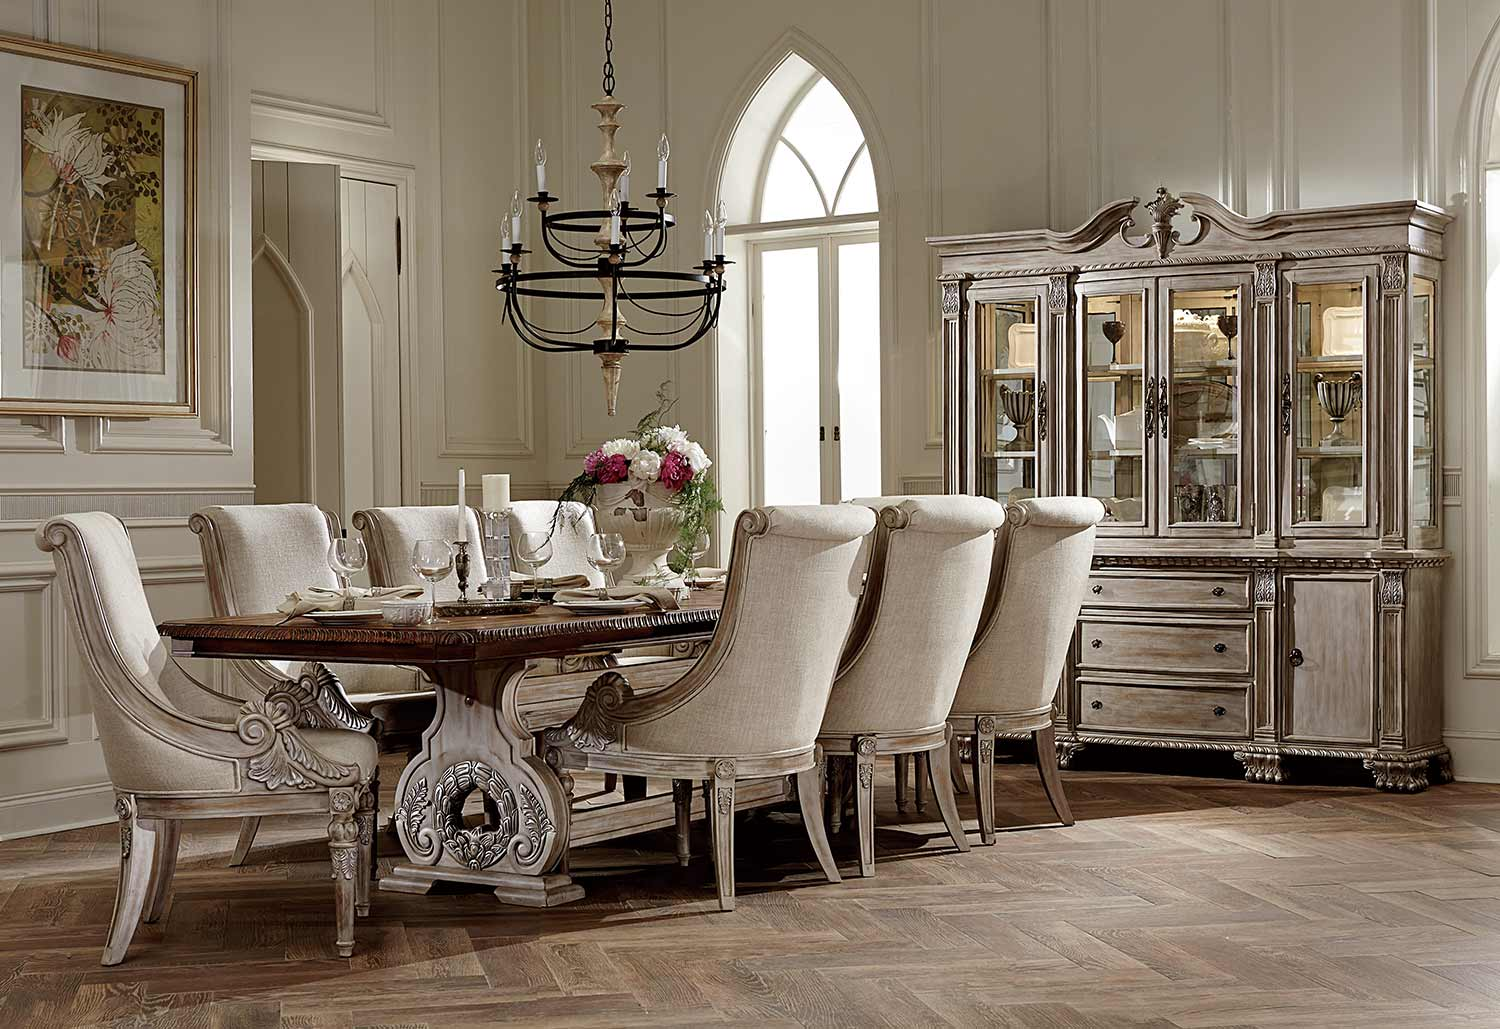 Formal Dining Sets homelegance orleans ii trestle dining set - white wash/weathered